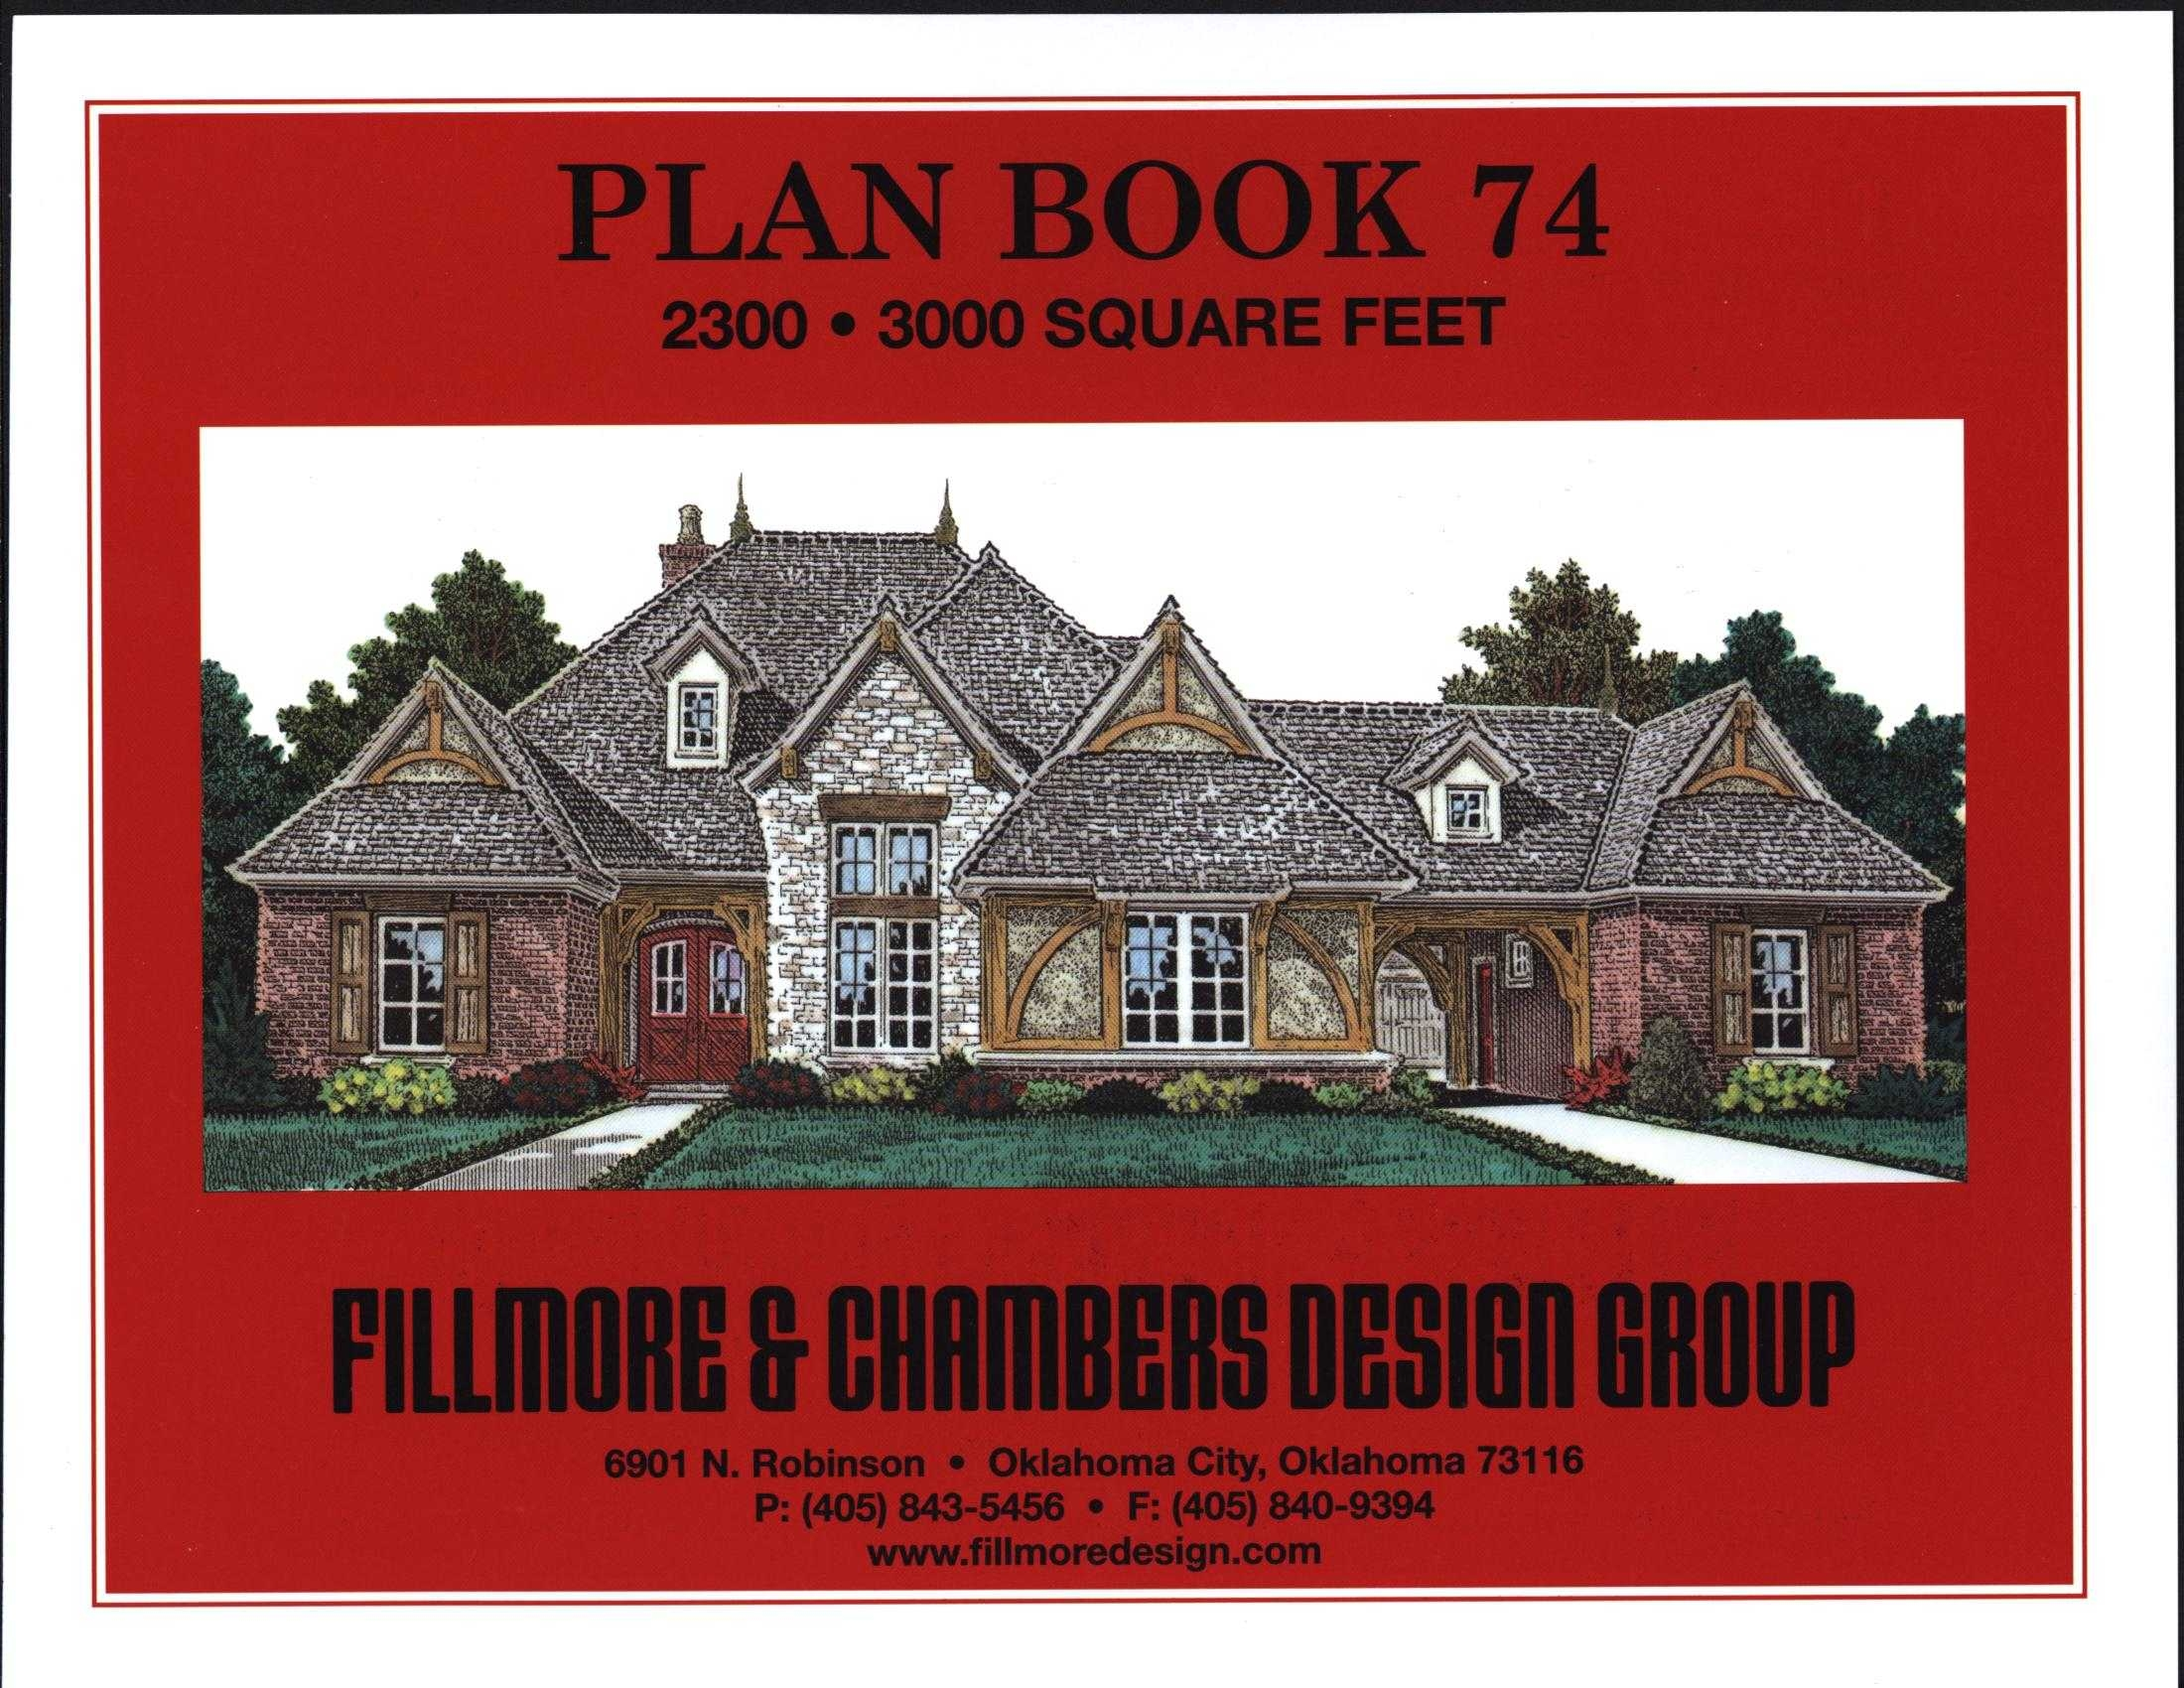 Plan book 74 fillmore chambers design group for Plan books